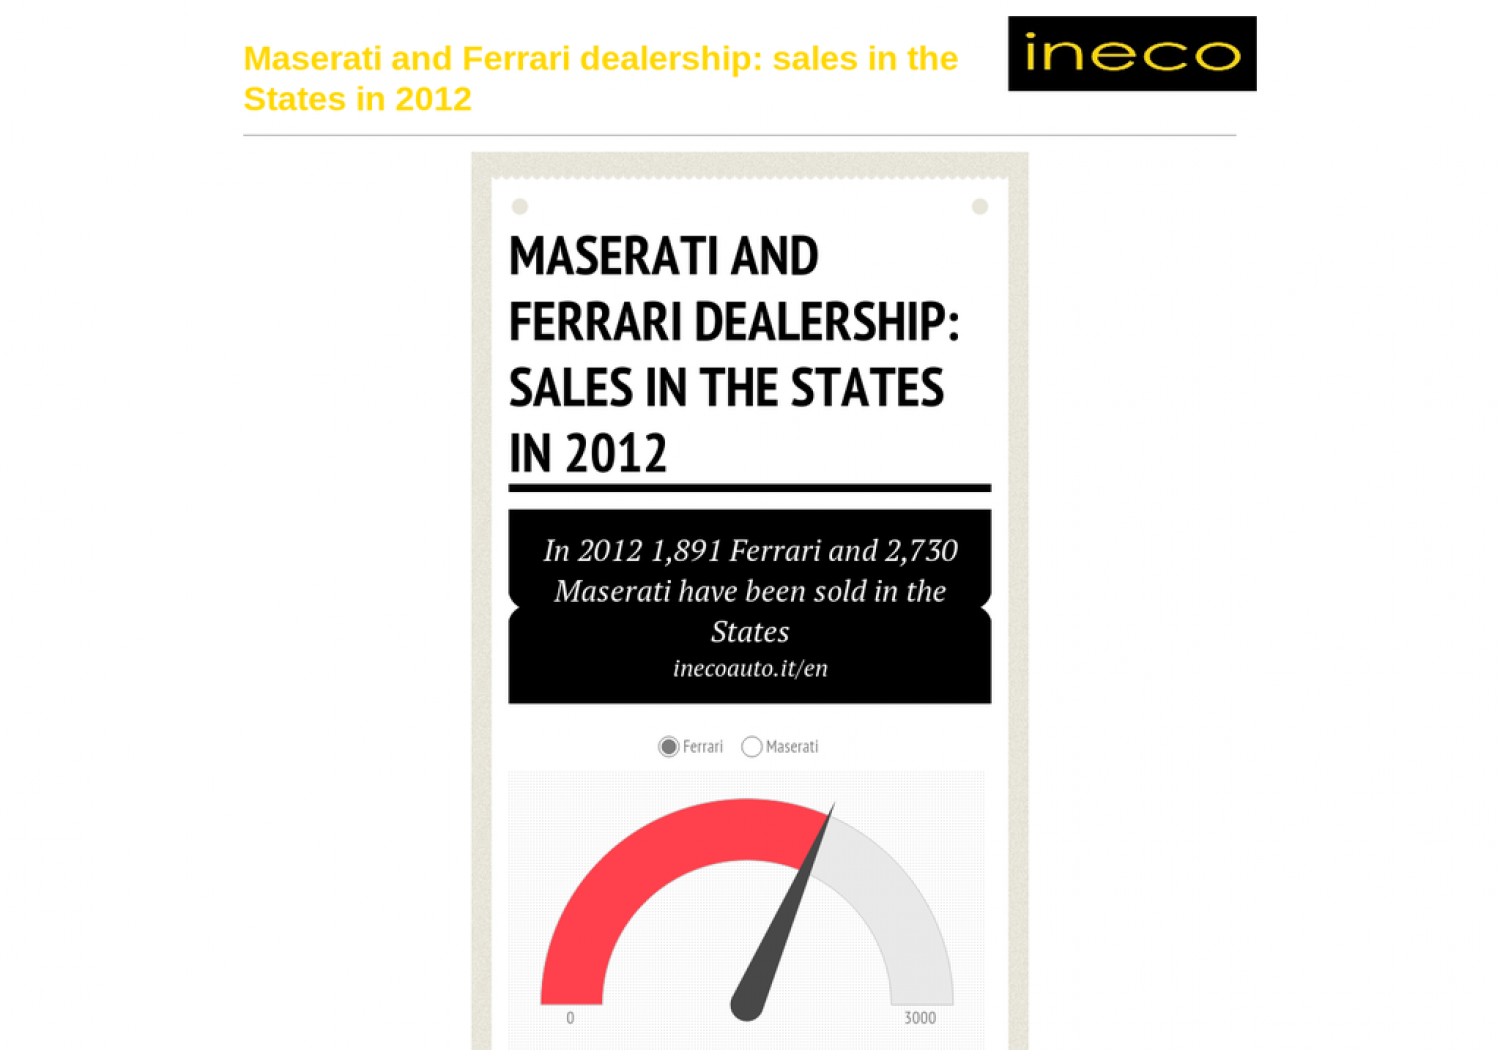 Maserati and Ferrari dealership: sales in the States in 2012 Infographic